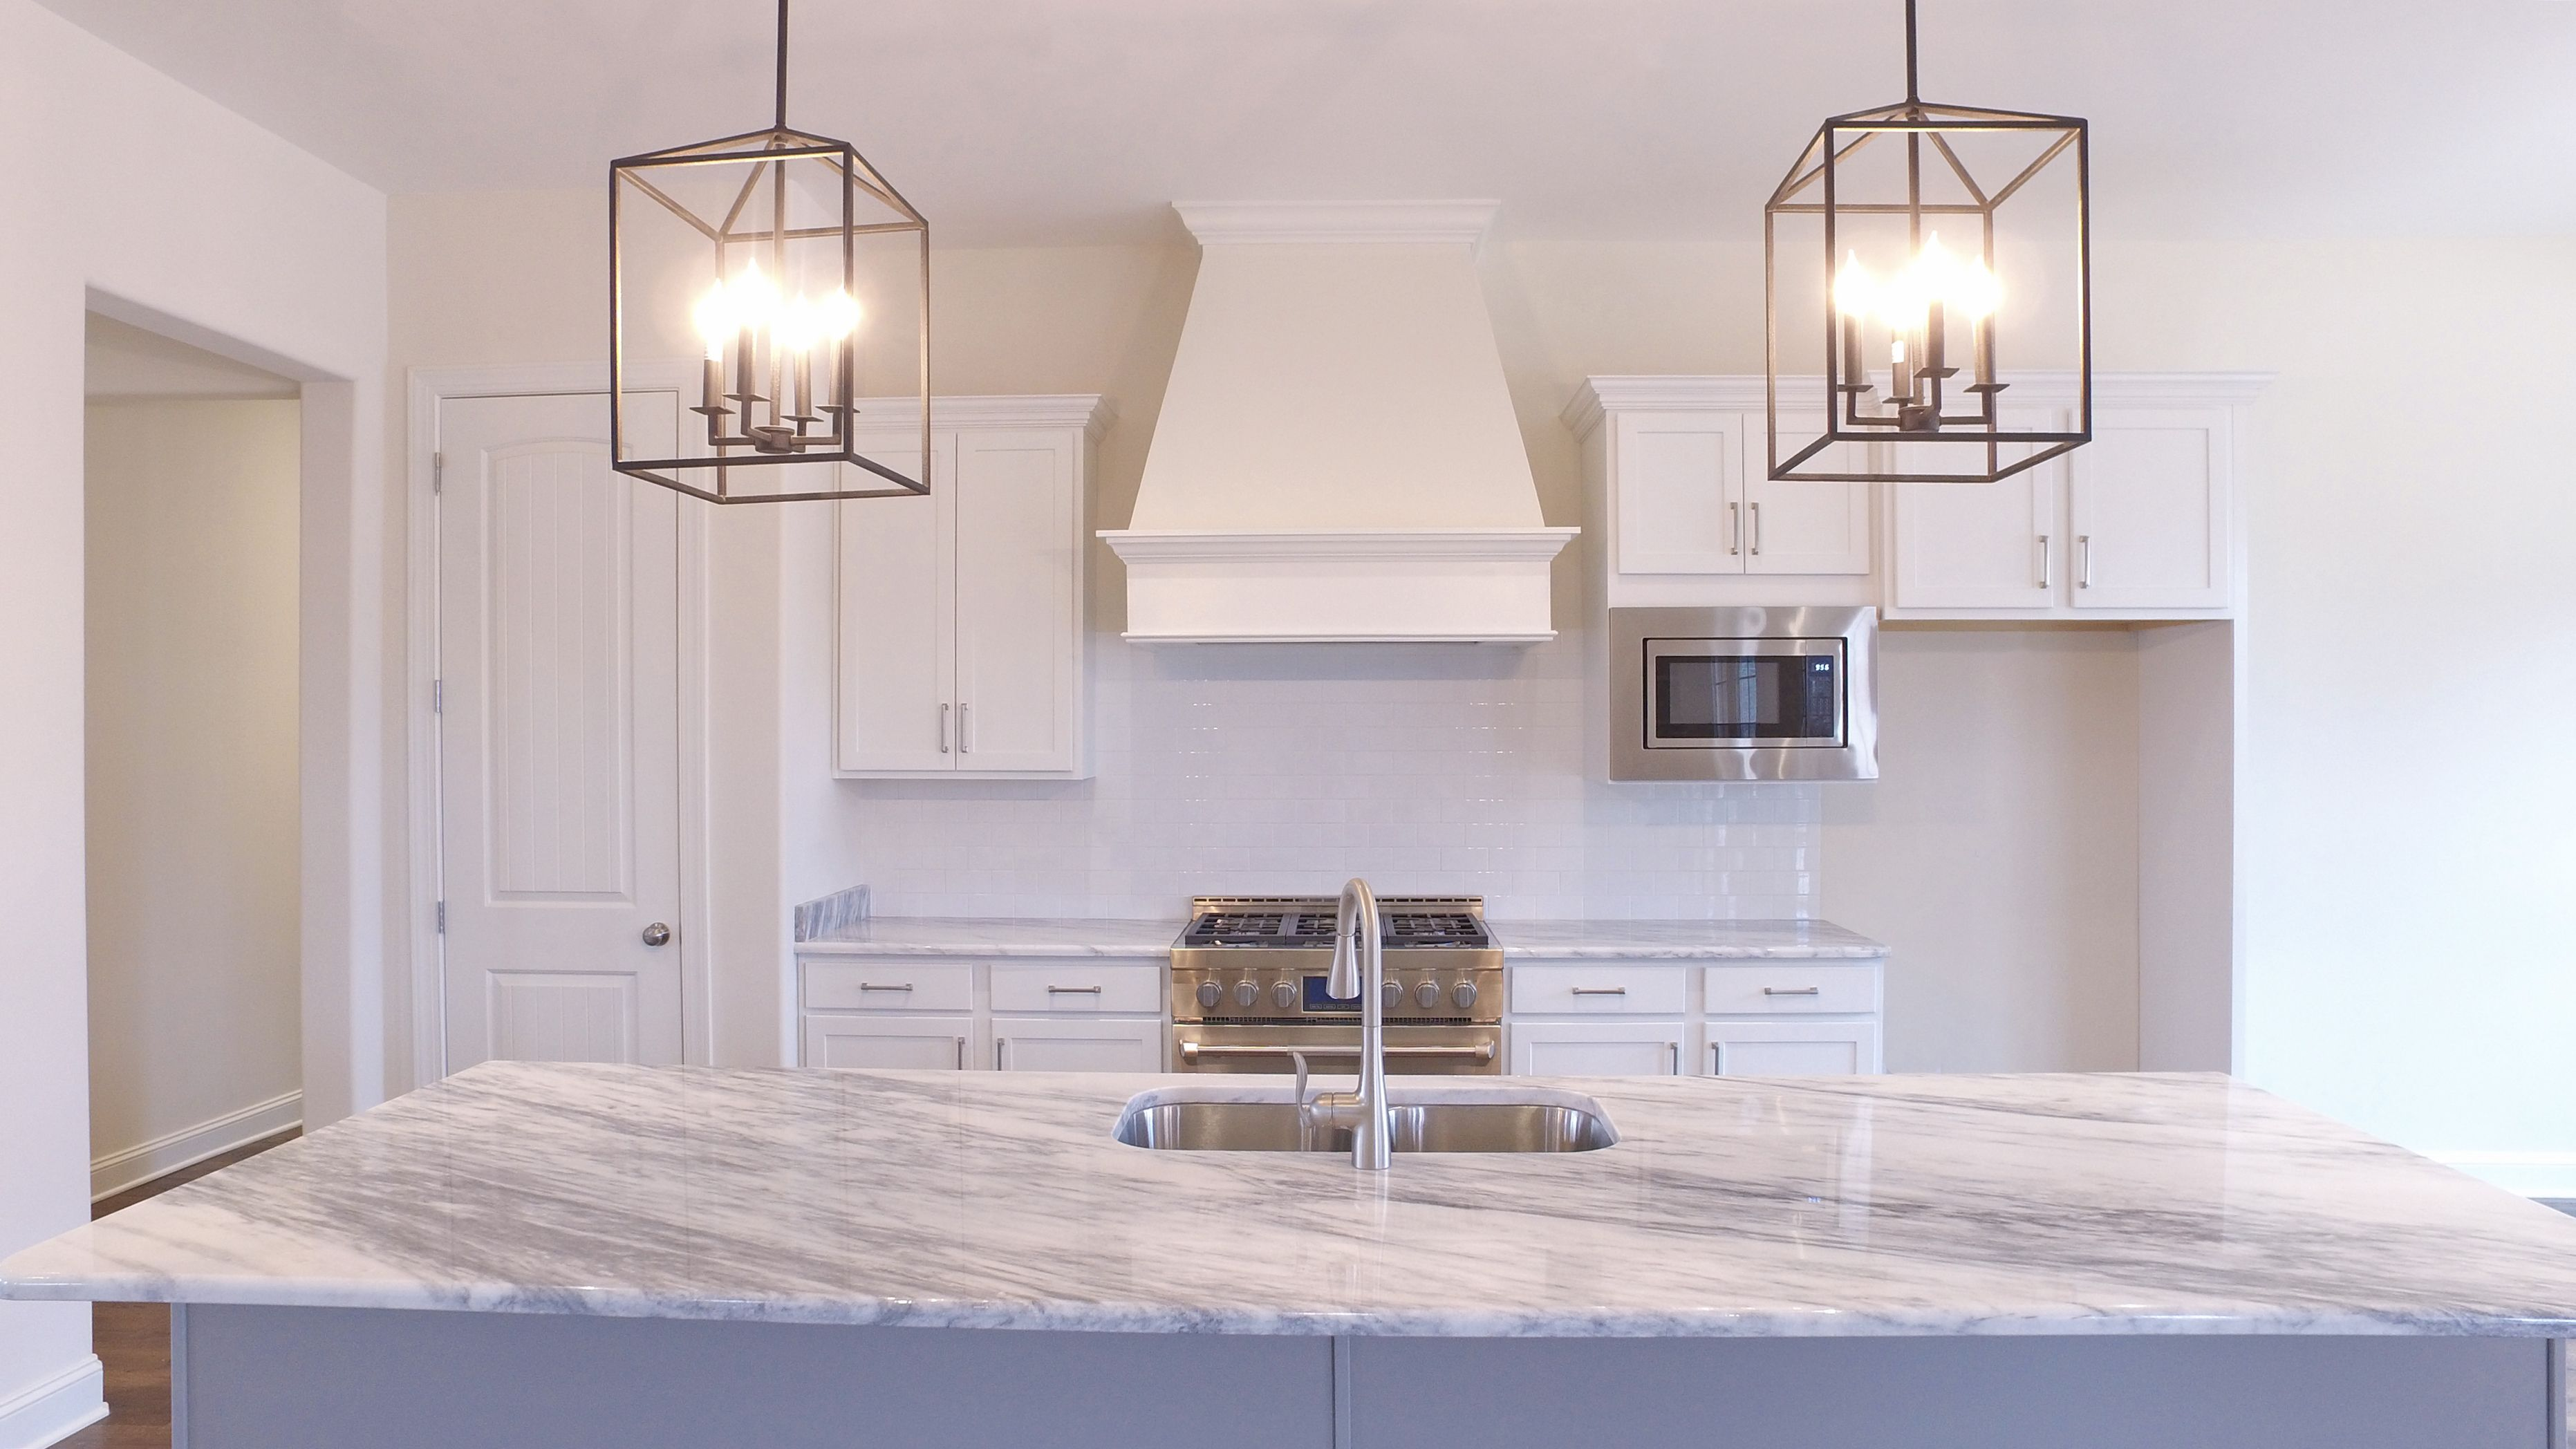 Kitchen featured in the Holloway By Regency Homebuilders in Memphis, TN